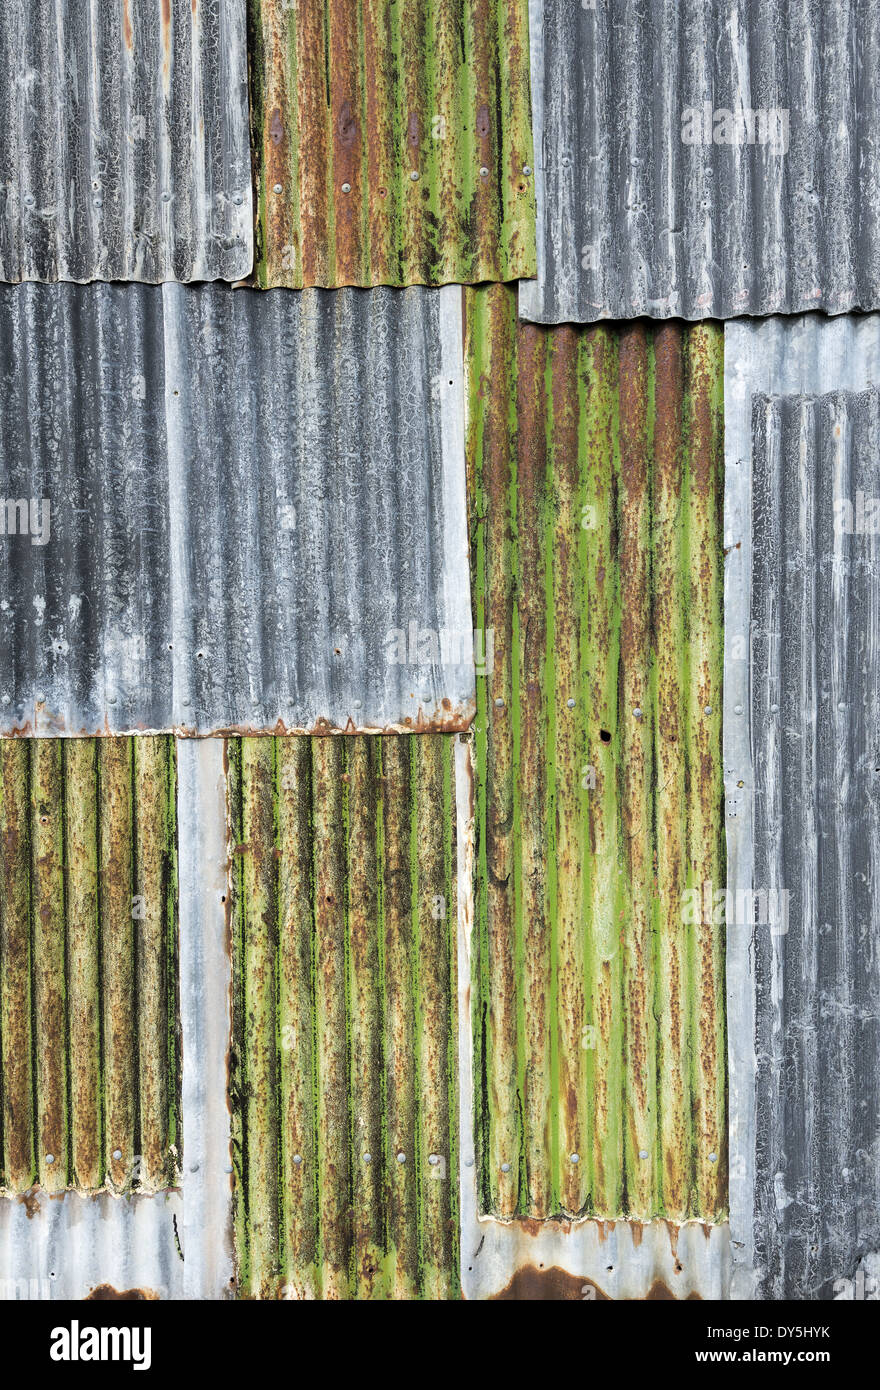 Rusty weathered metal sheeting layers on barn exterior - Stock Image